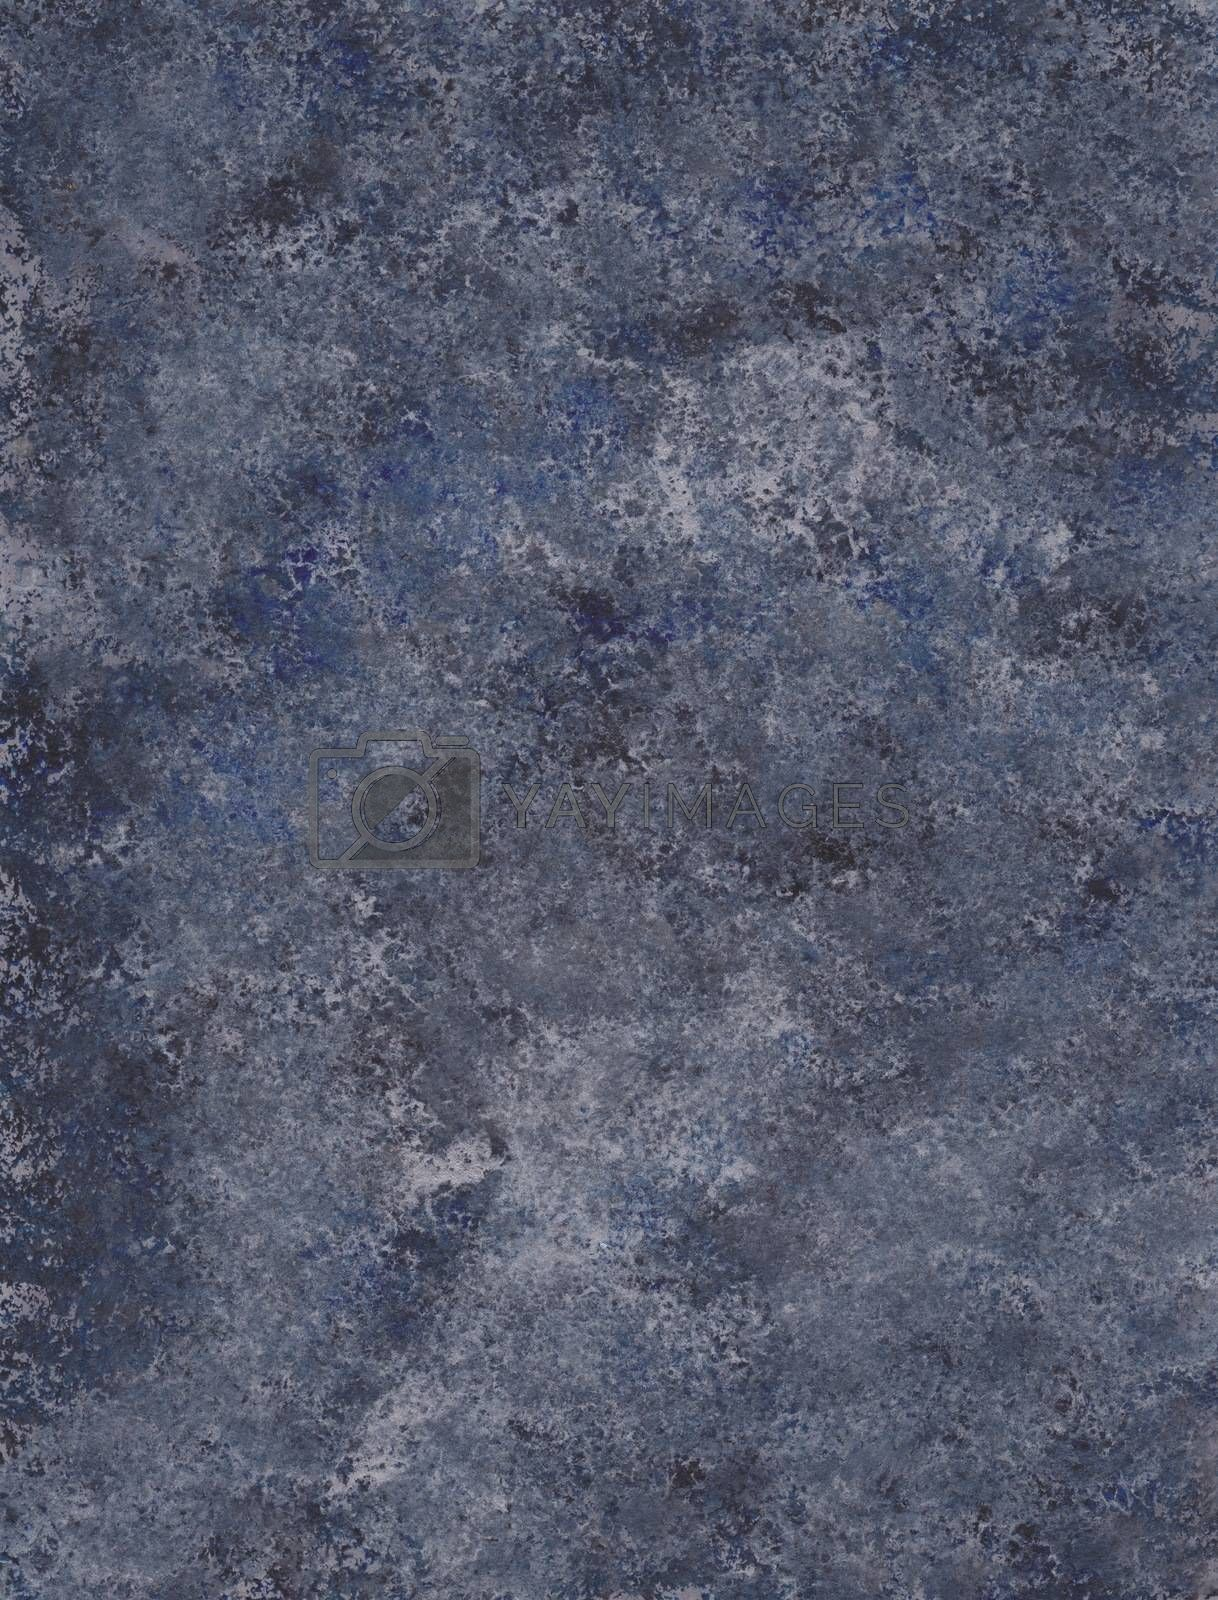 Royalty free image of Abstract speckled blue-gray surface by cabrin